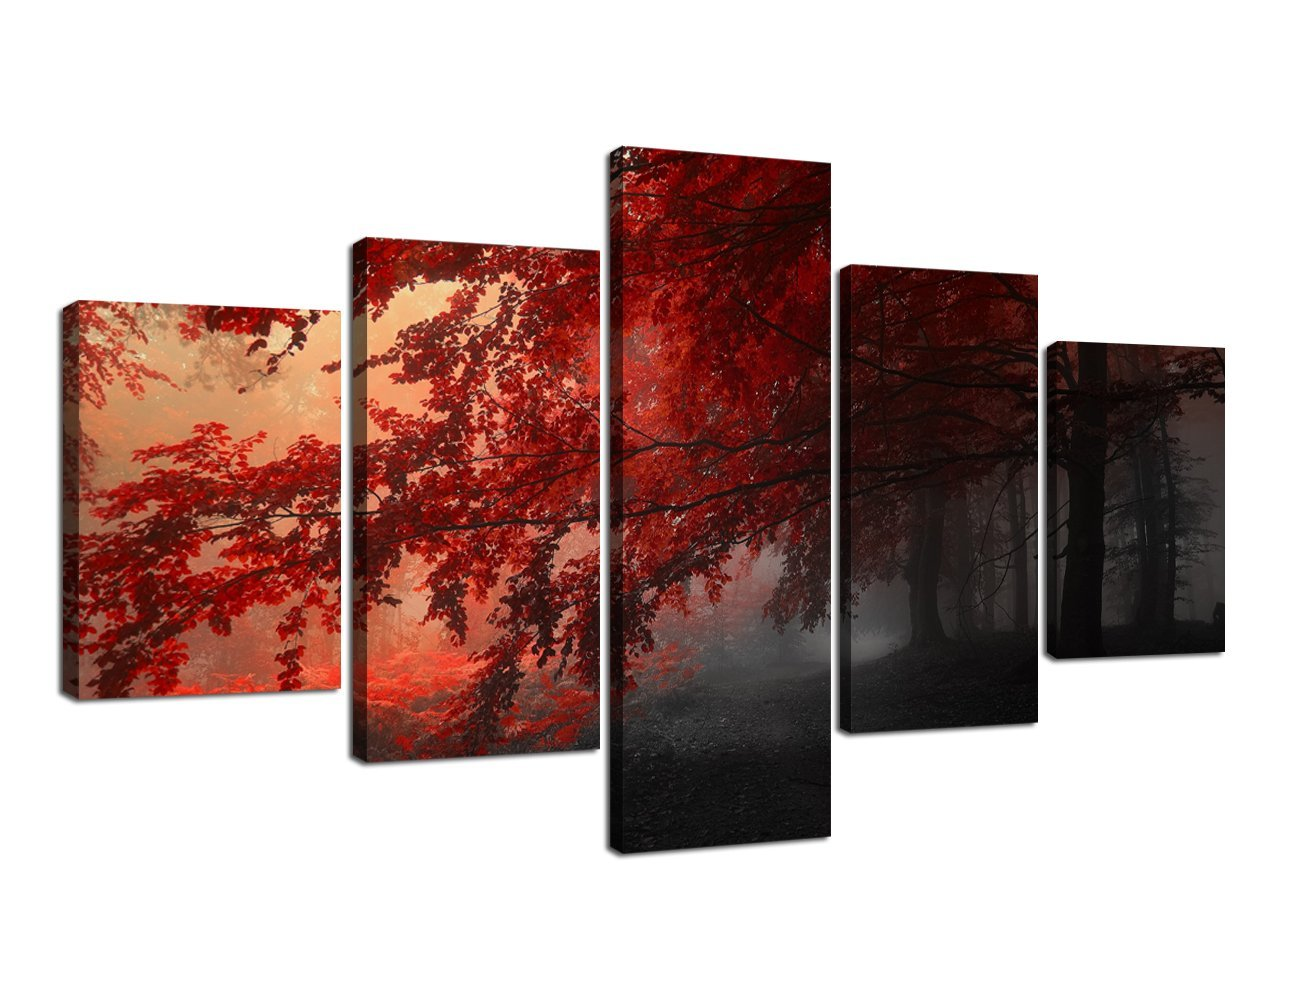 Yatsen Bridge Autumn Red Tree Maple Forest Modern Pictures 5 Pieces Artwork Living Room Large Canvas Painting Wall Art Set Wood Frame Indoor Ready to Hang Wall Decorative(70''W x 40''H)